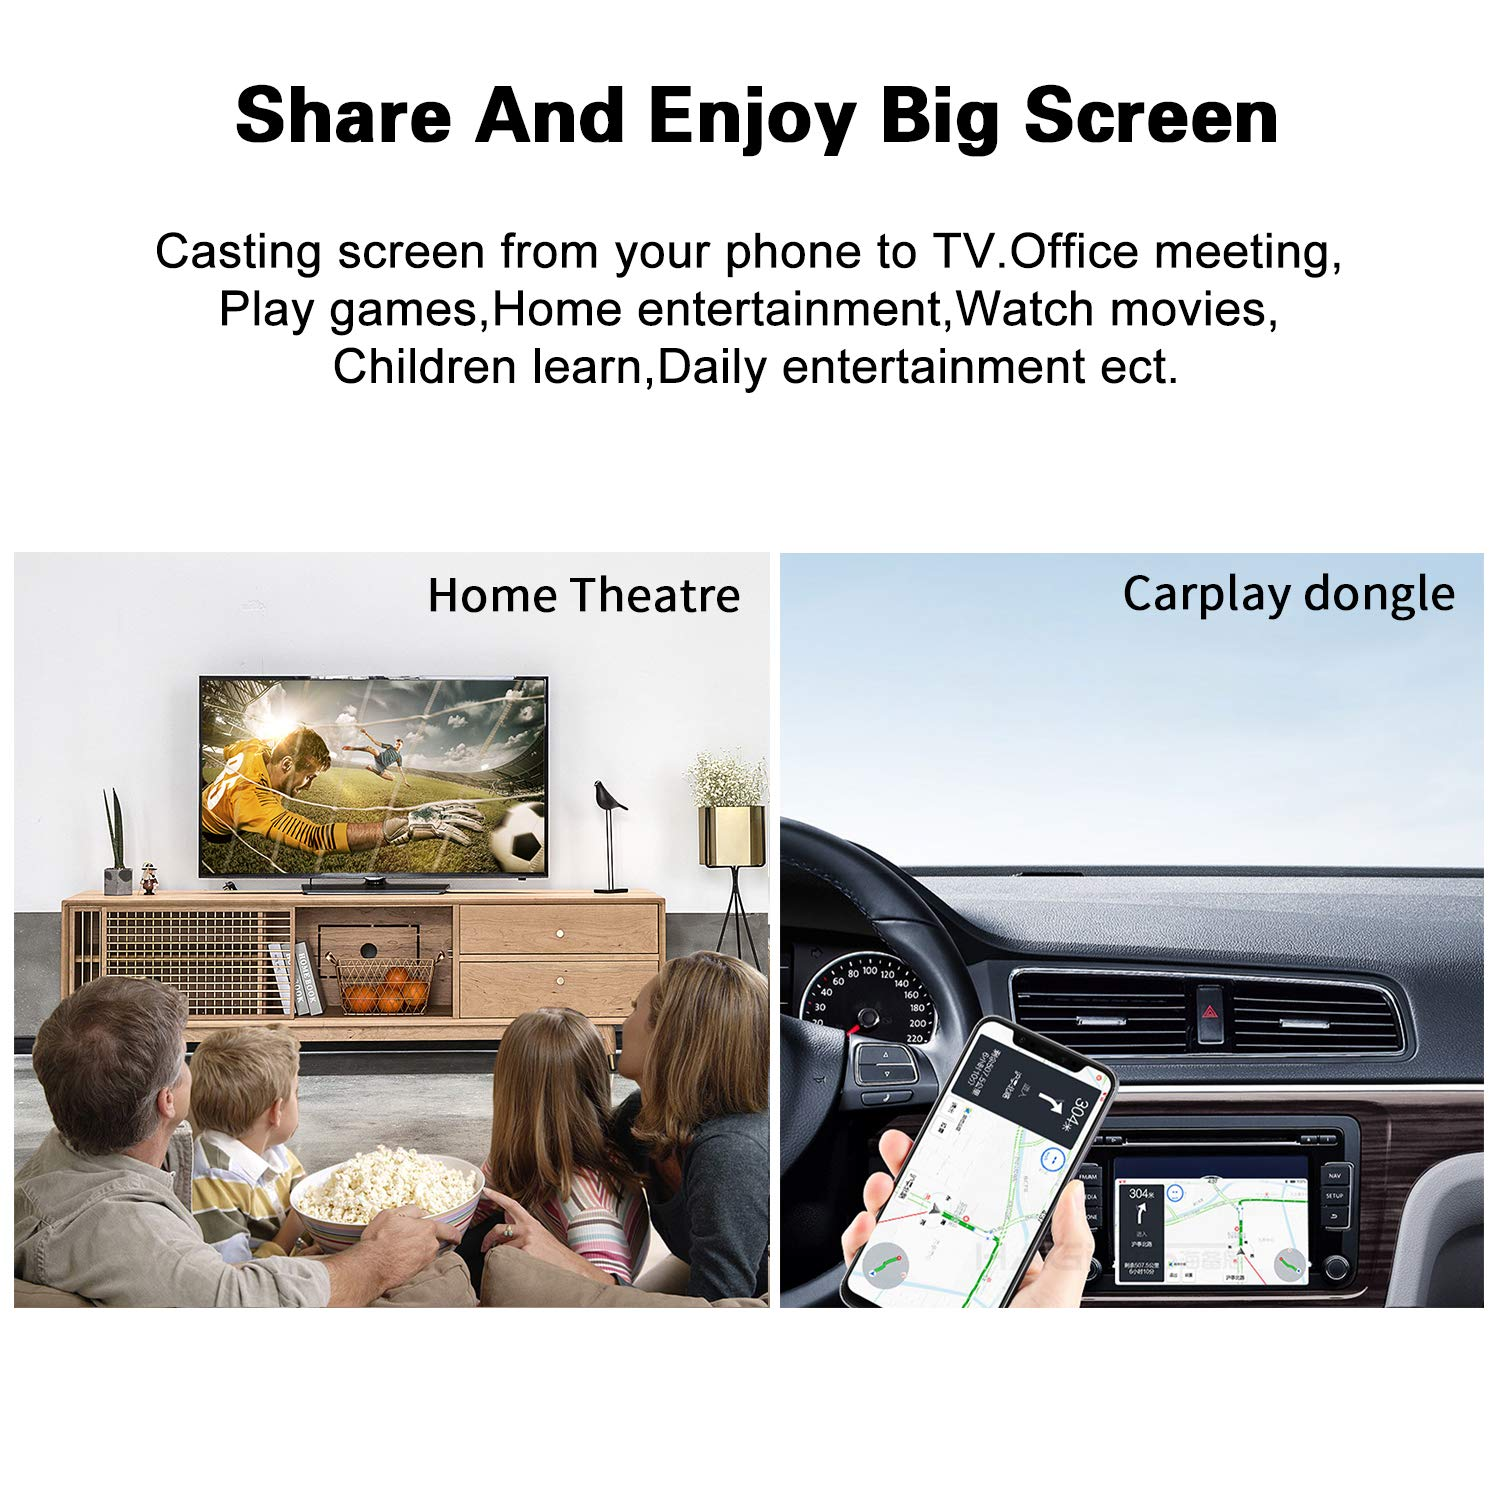 2.4GHz WiFi Display Adapter 4K WiFi Dongle Ricevitore Miracast Airplay DLNA per Android//Smartphone//PC//TV//Monitor//Proiettore EZCast Wireless Display Dongle HDMI 5GH